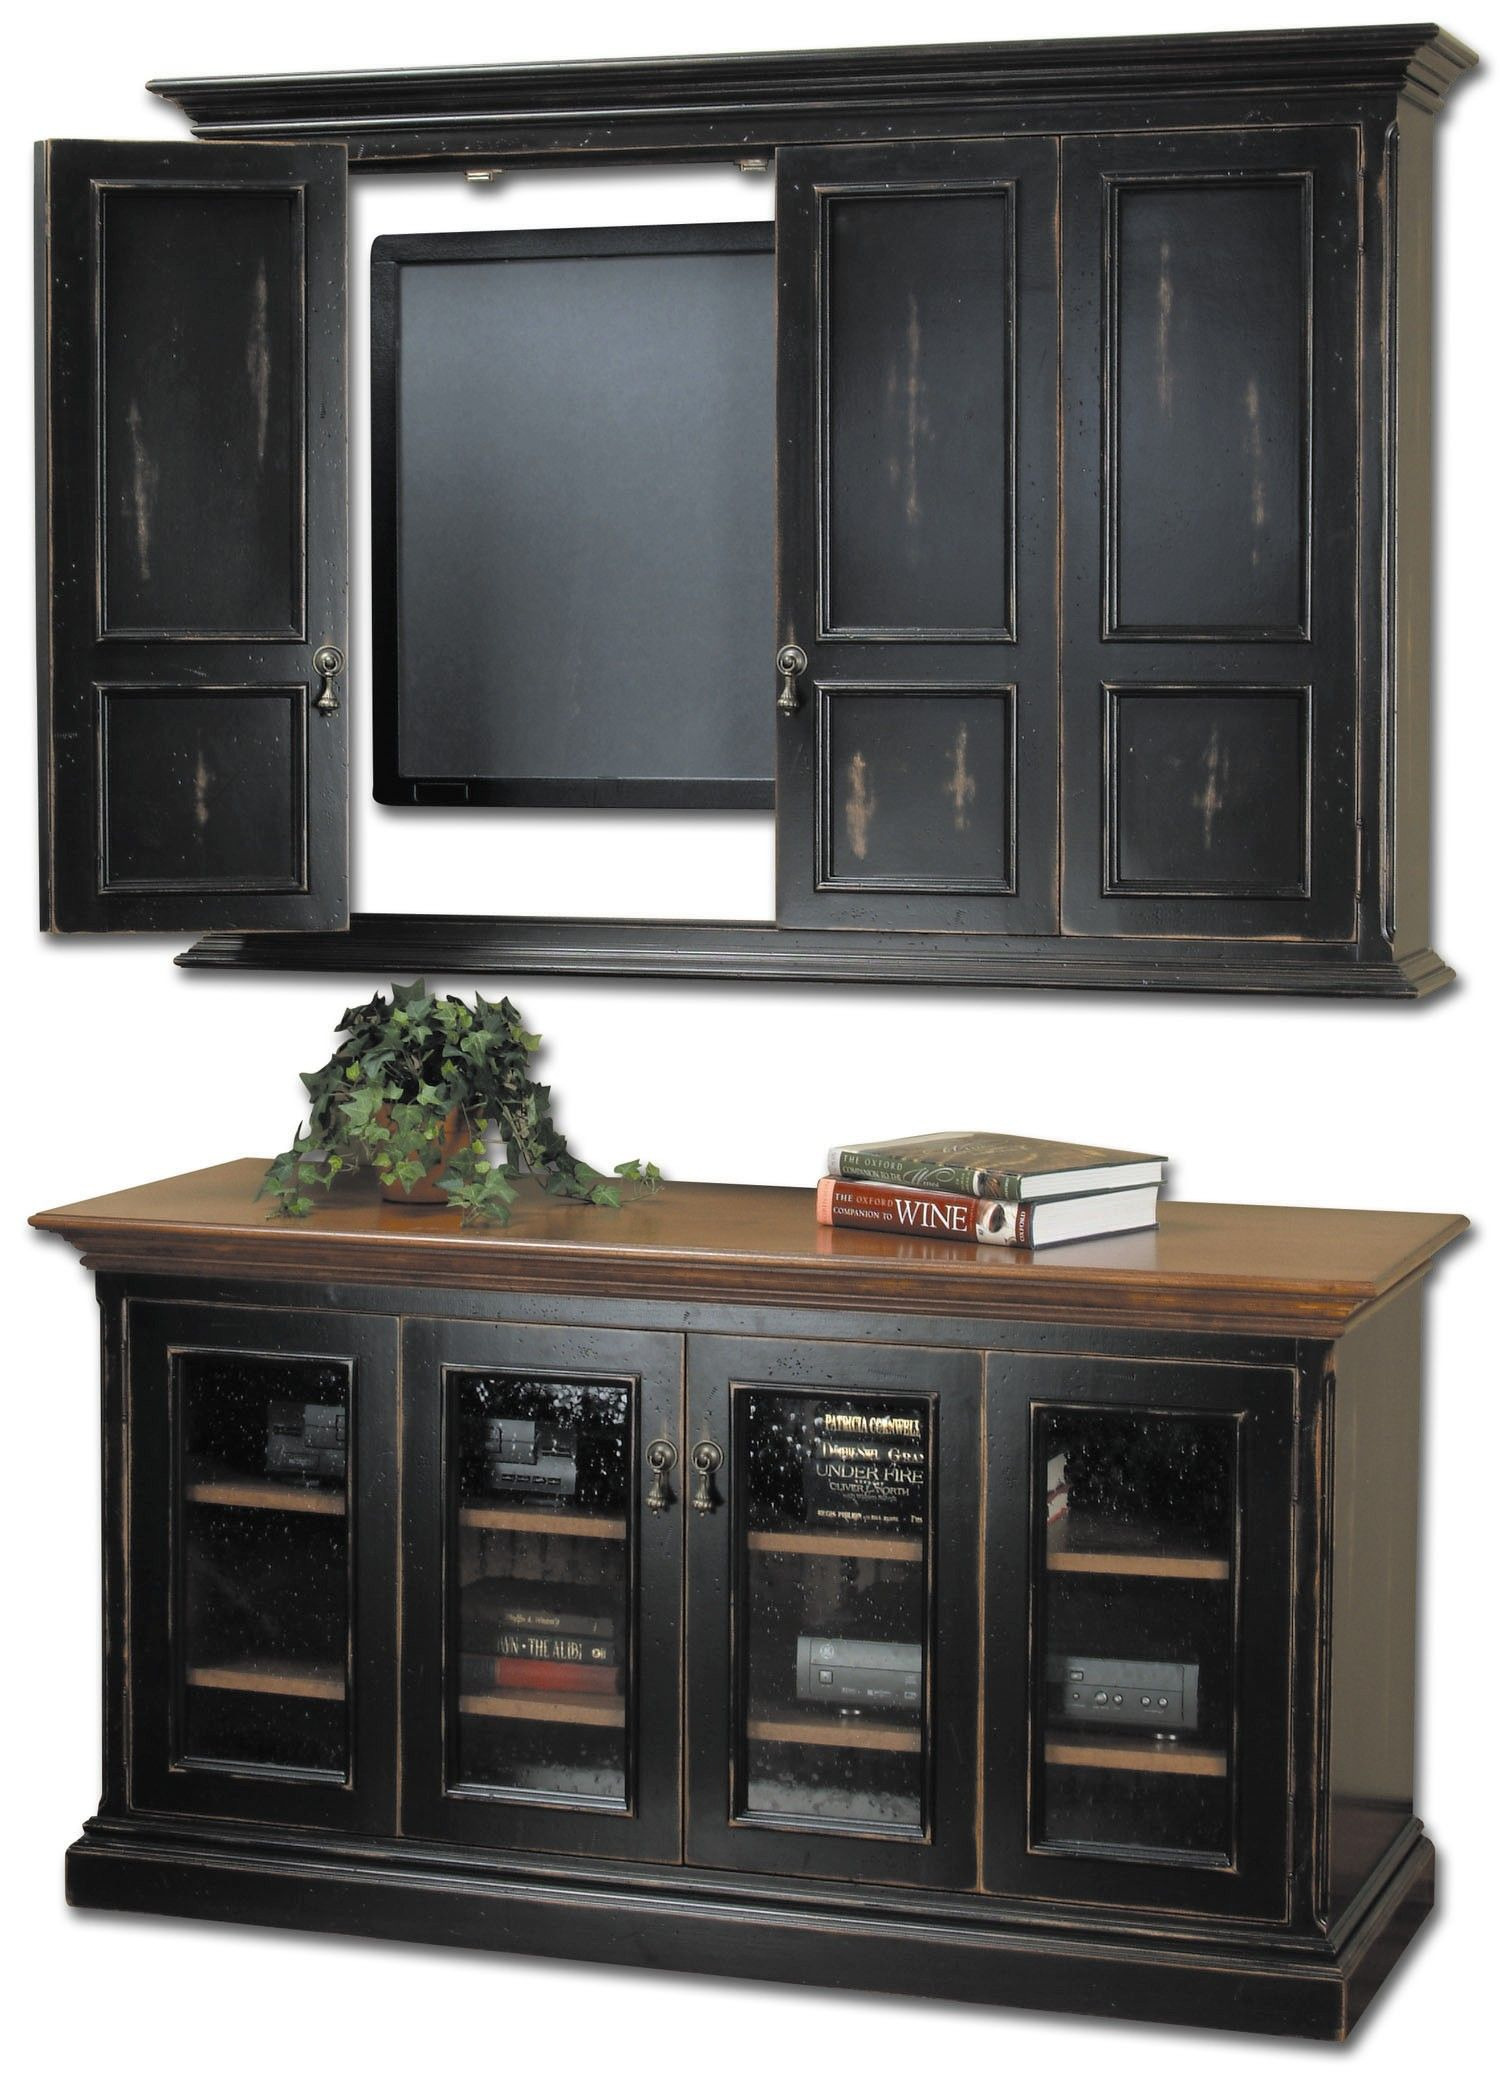 Tv Cabinets with Glass Doors Elegant Wooden Cabinets with Glass Doors